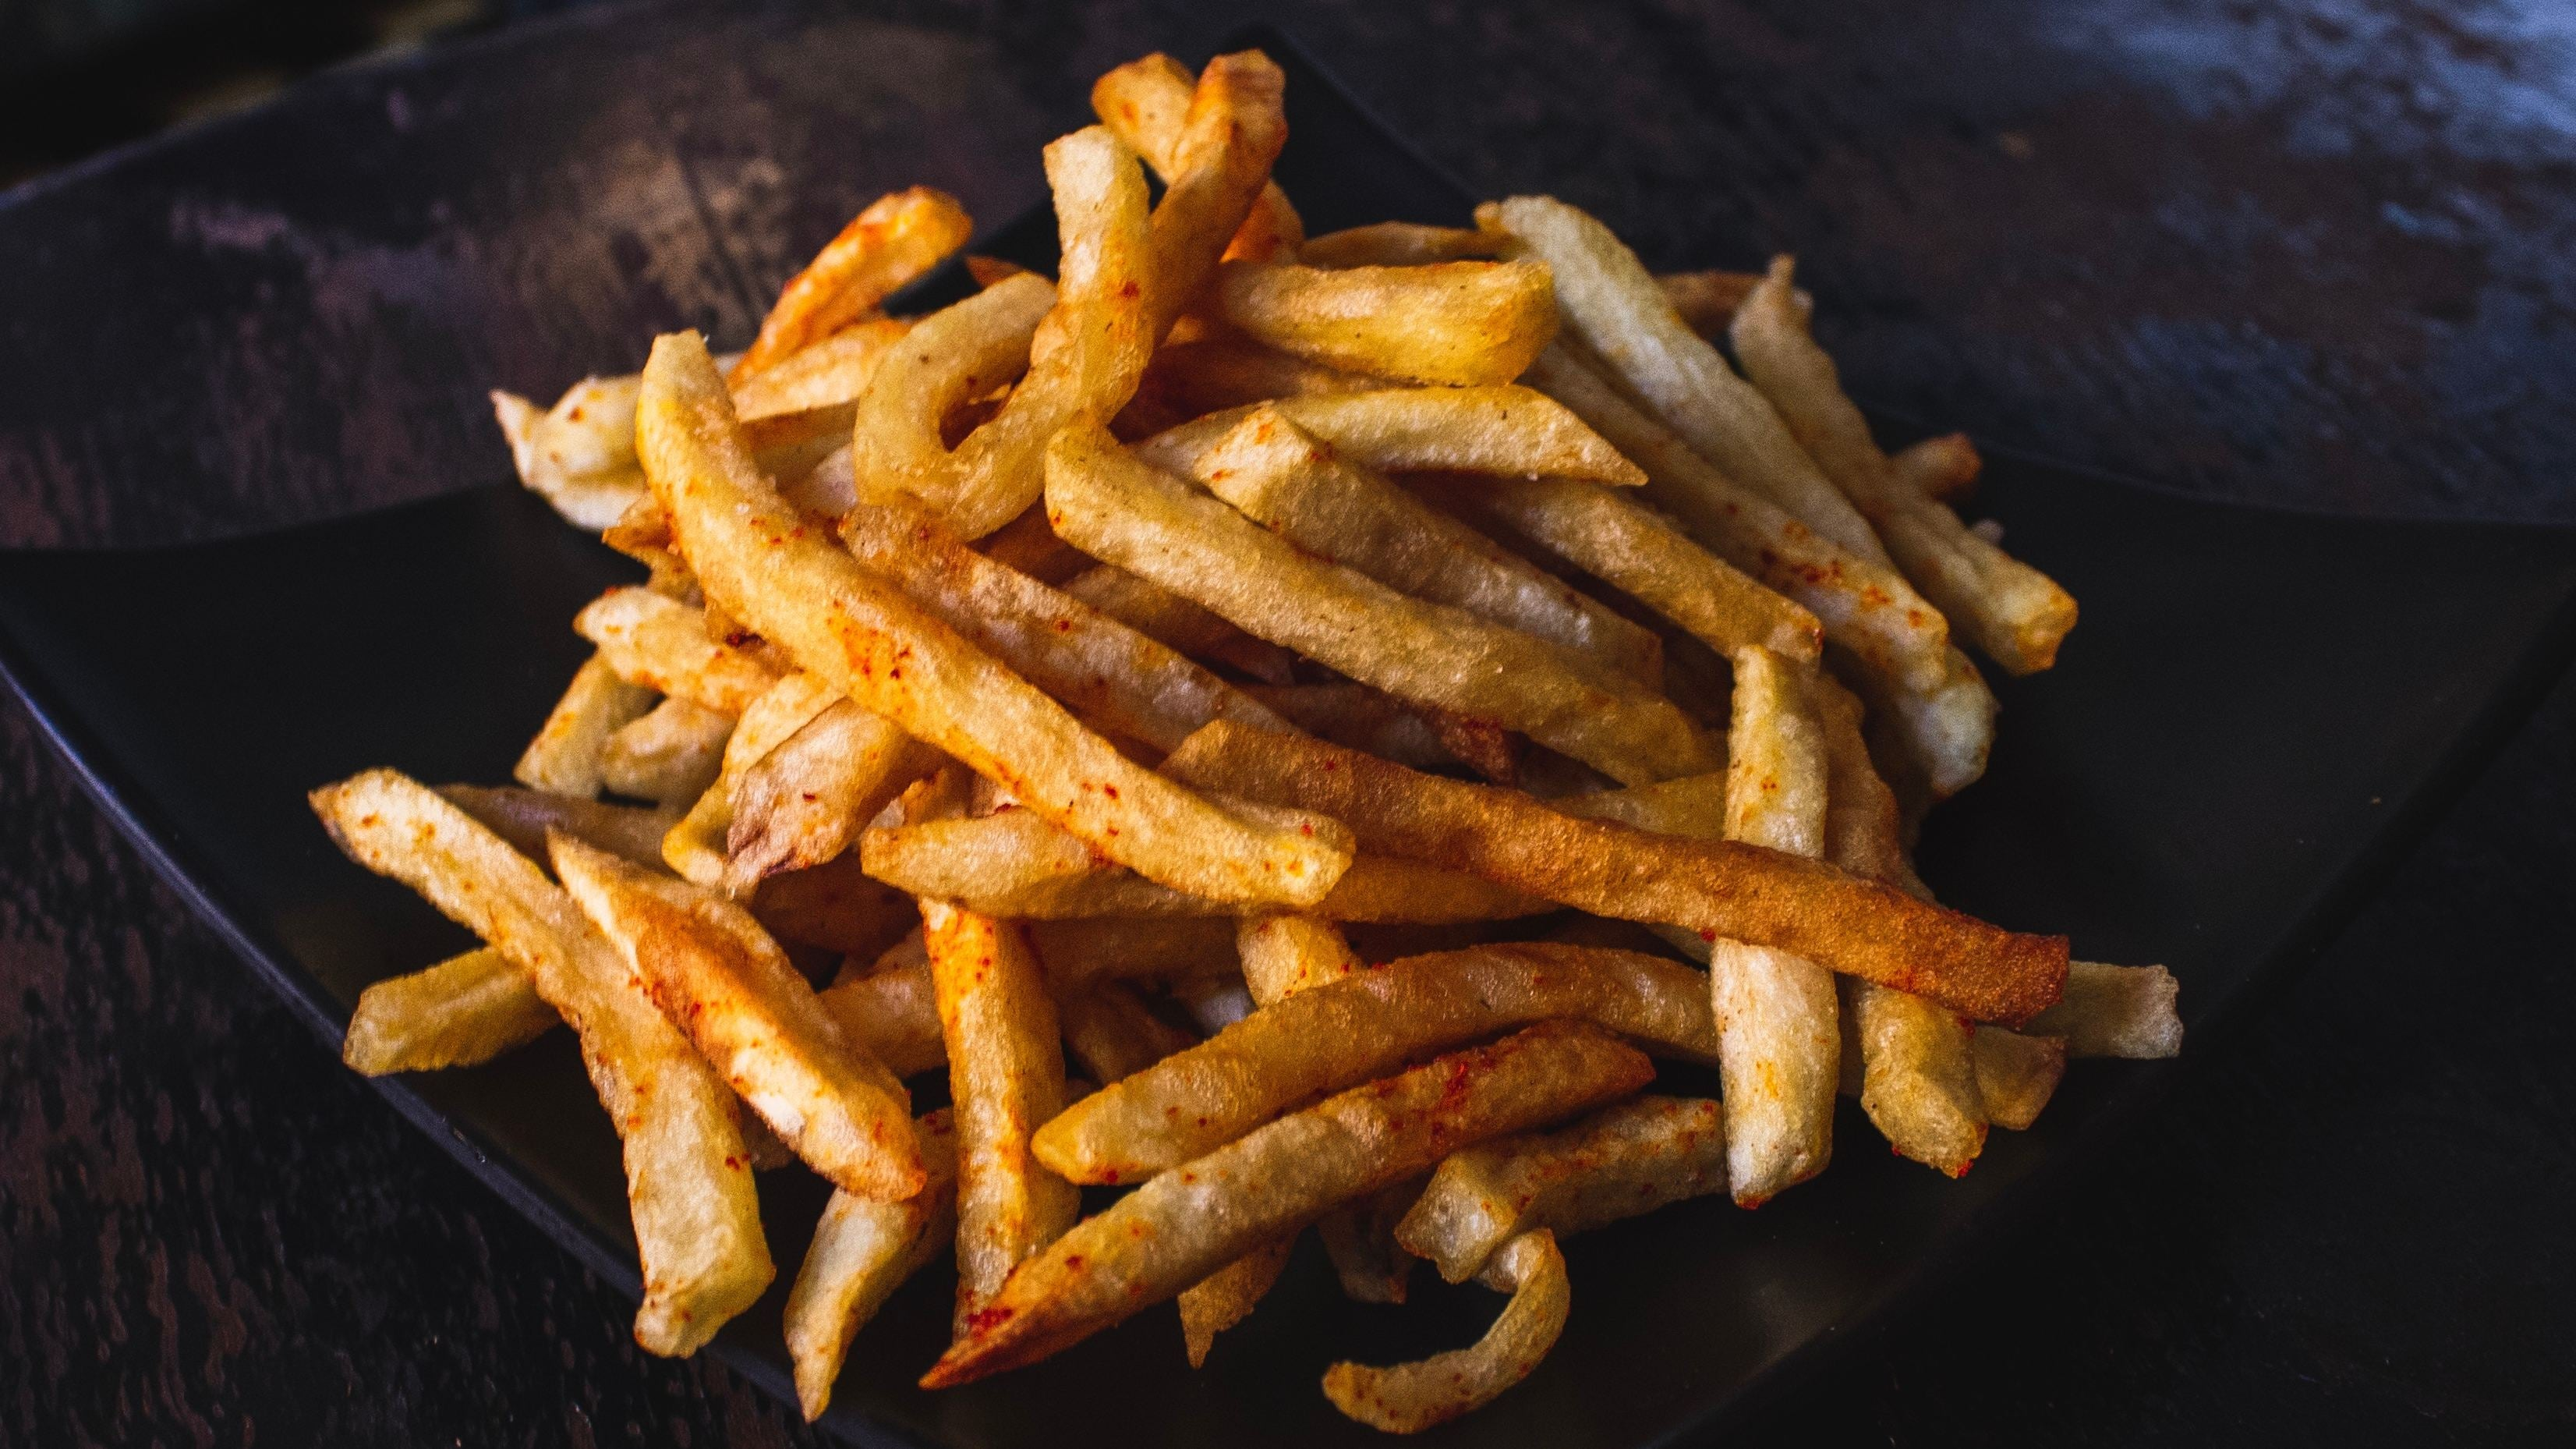 Sprinkle Instant Noodle Seasoning On French Fries